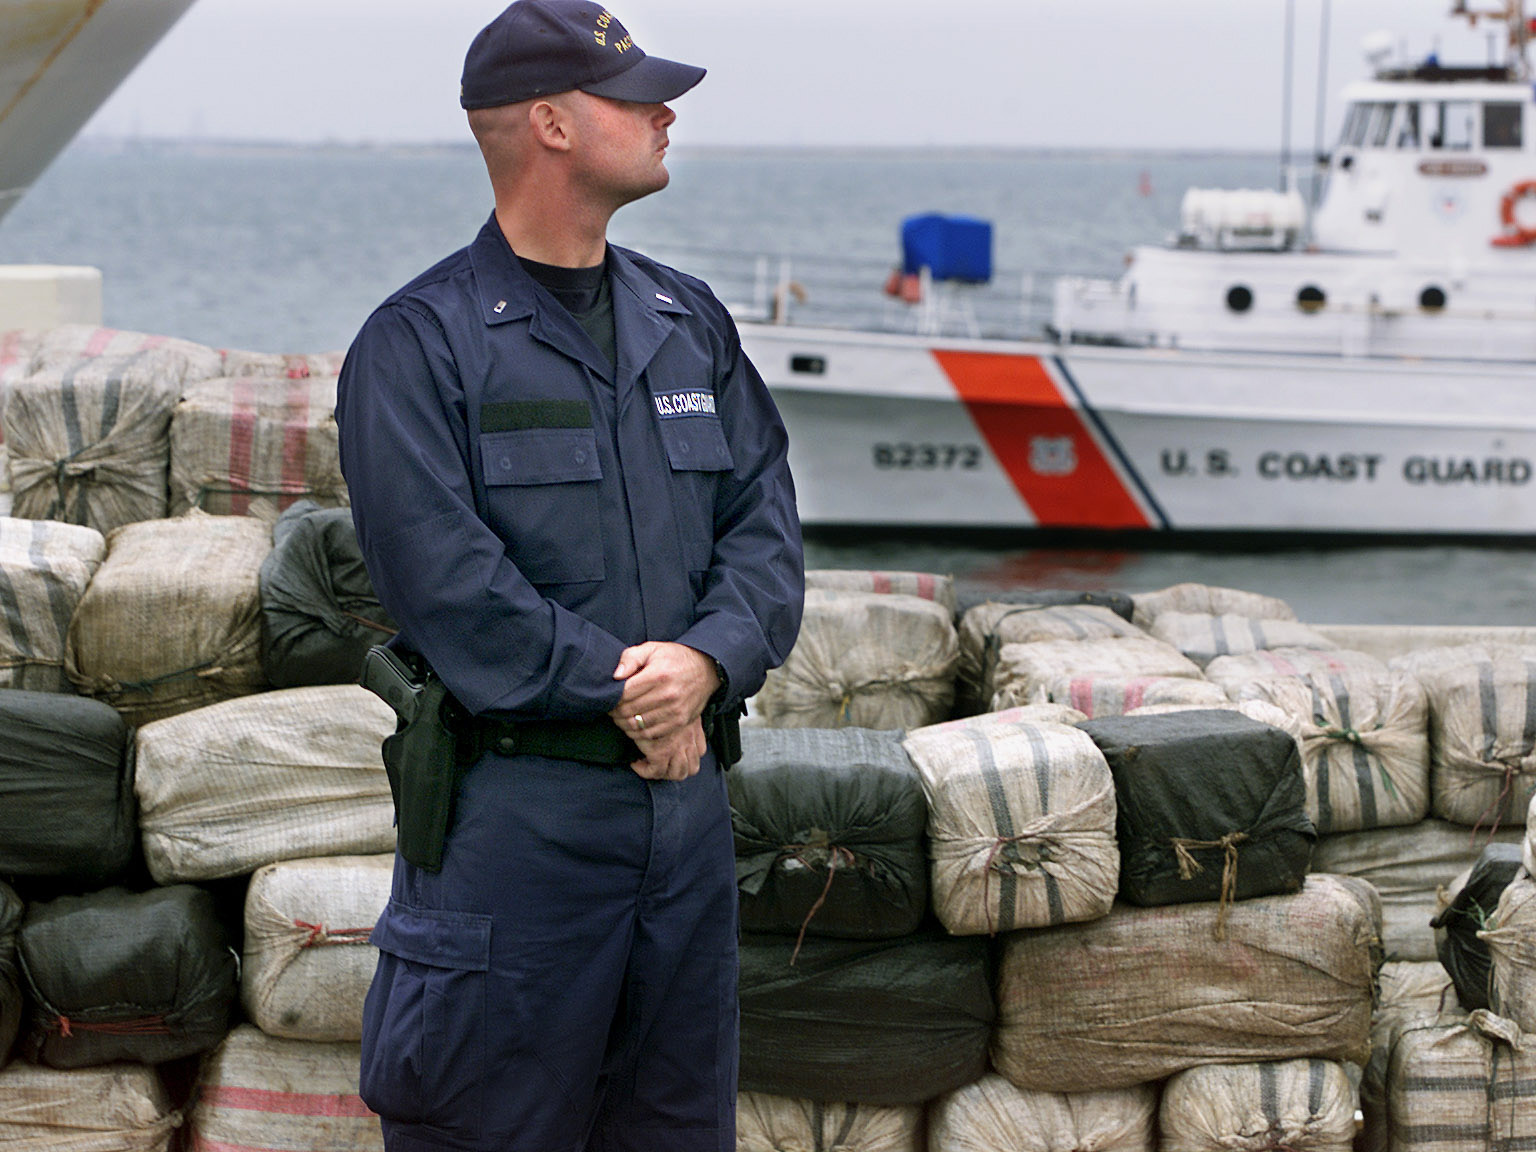 San Diego––An armed member of the U.S.Coast Gaurd and ship keep an eye on some of the 12 metric tons